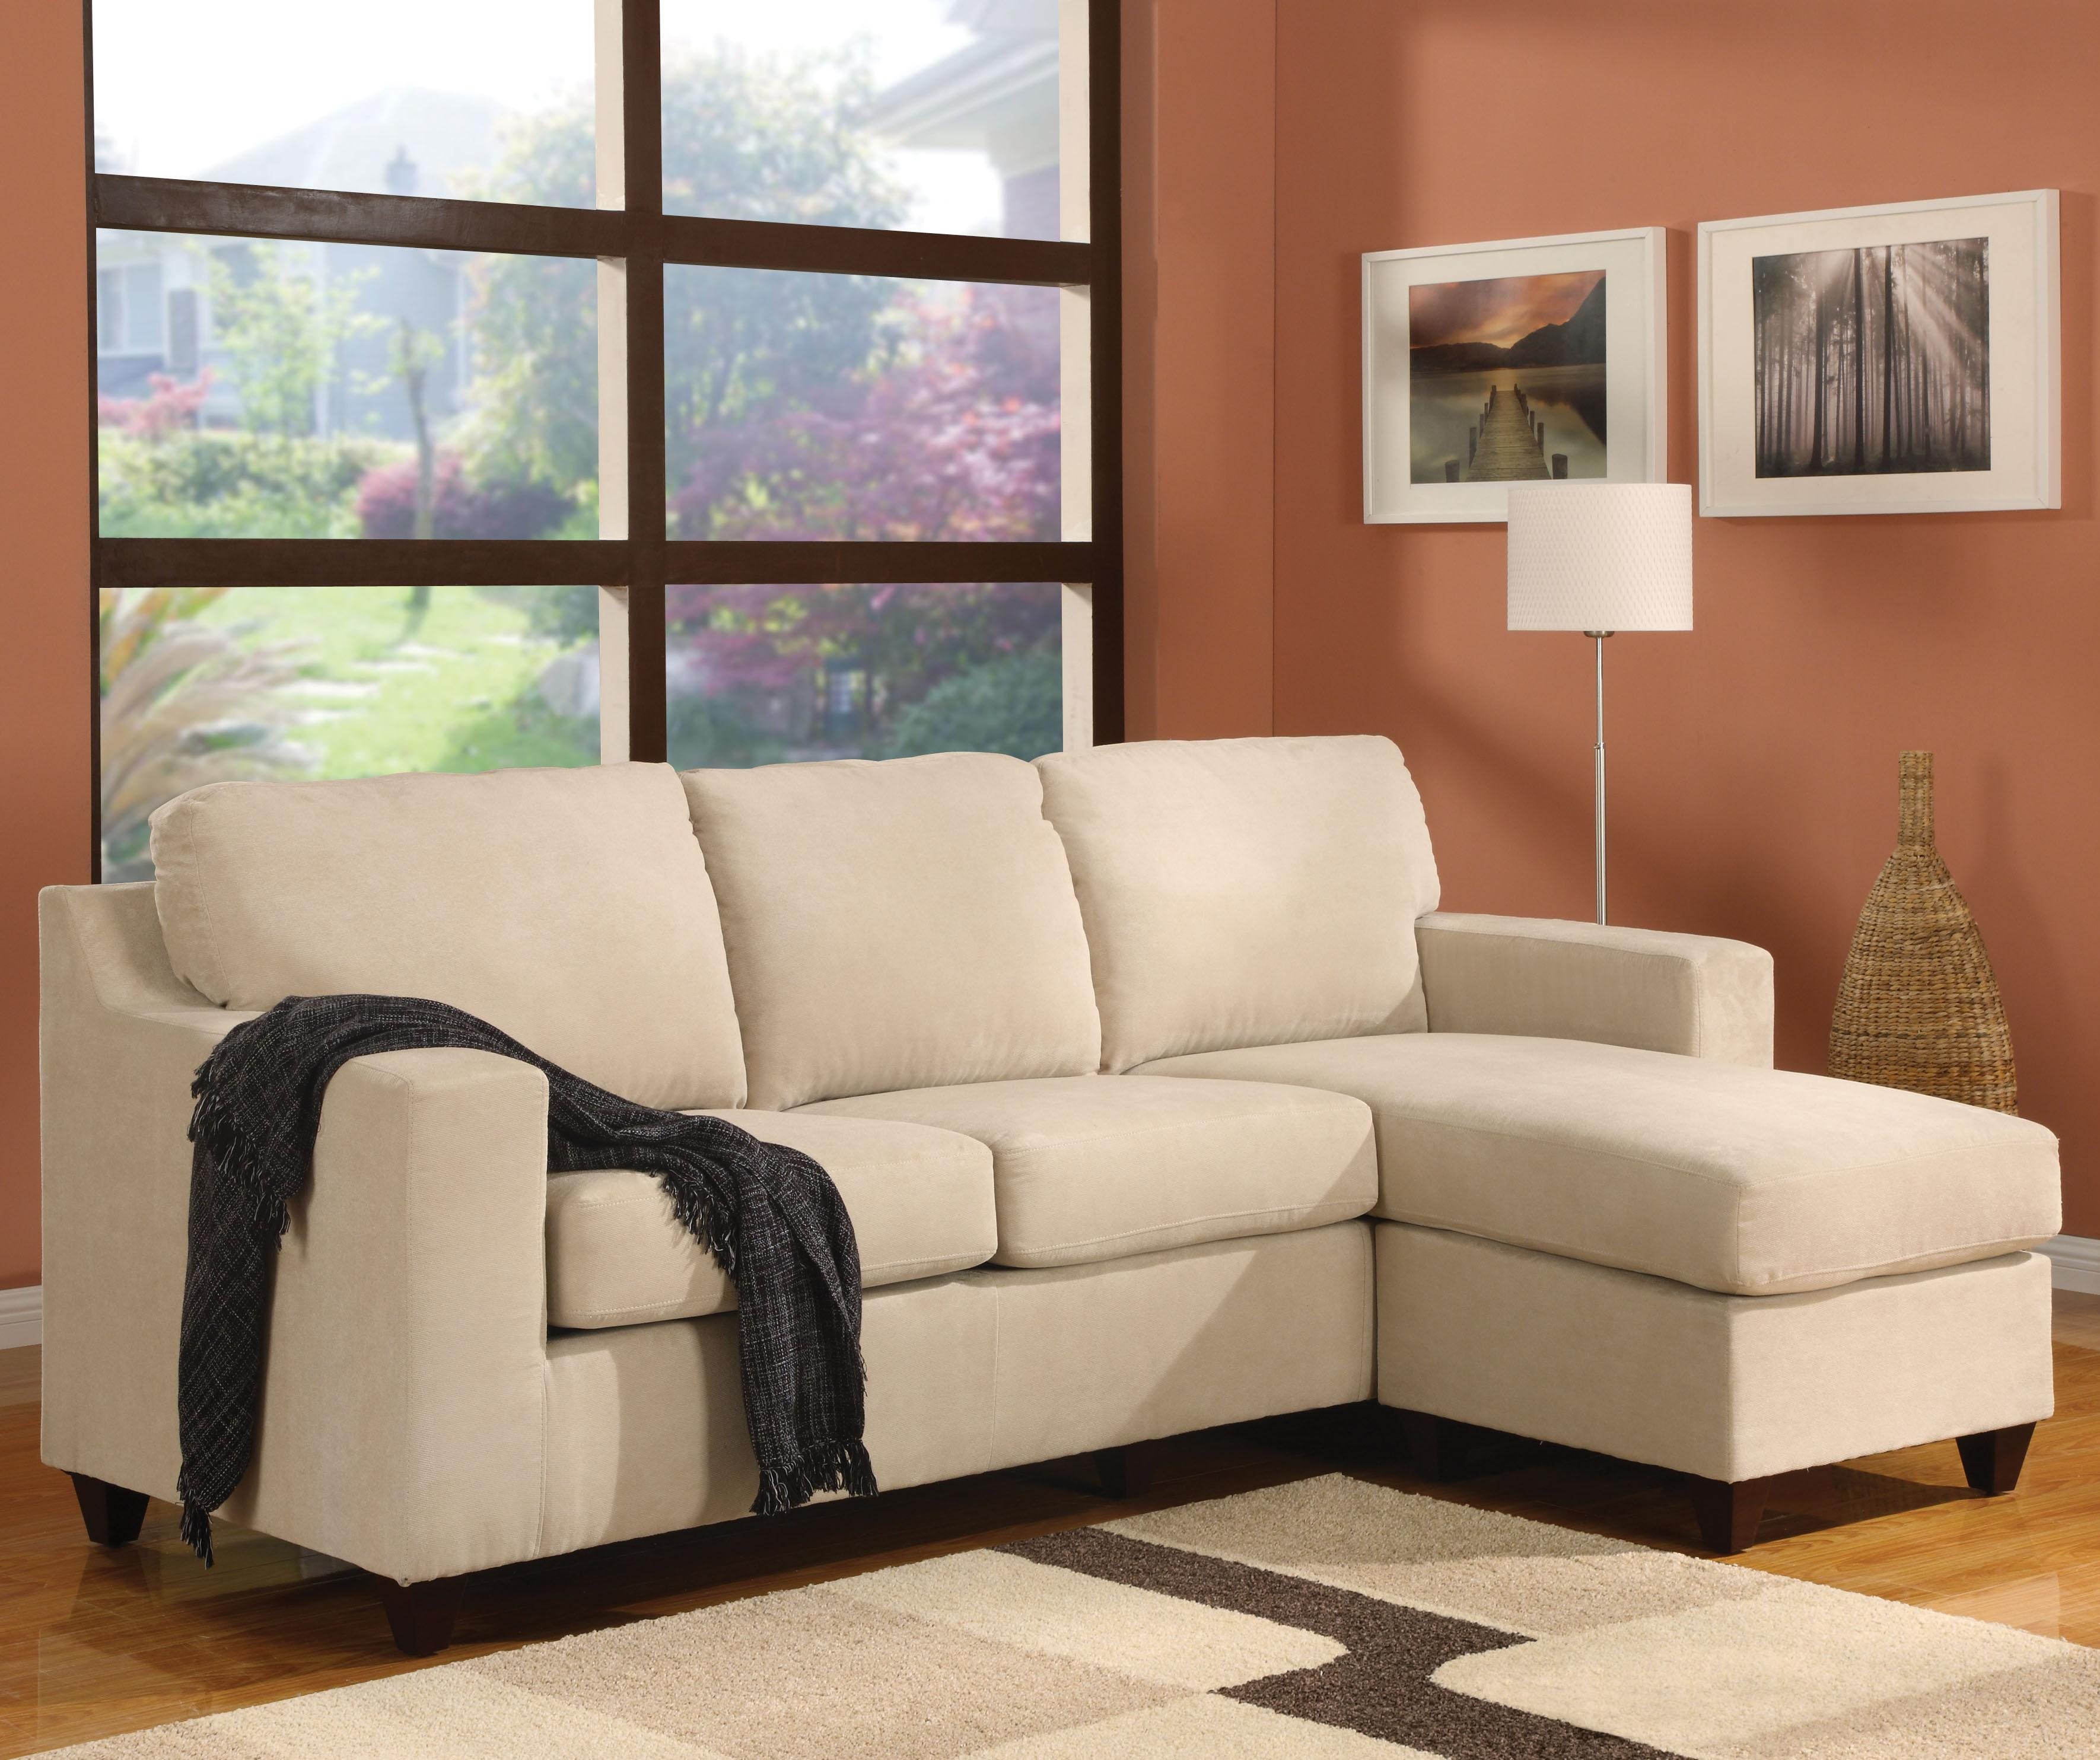 5913 Vogue Reversible Chaise Sectional by Acme Furniture at A1 Furniture & Mattress